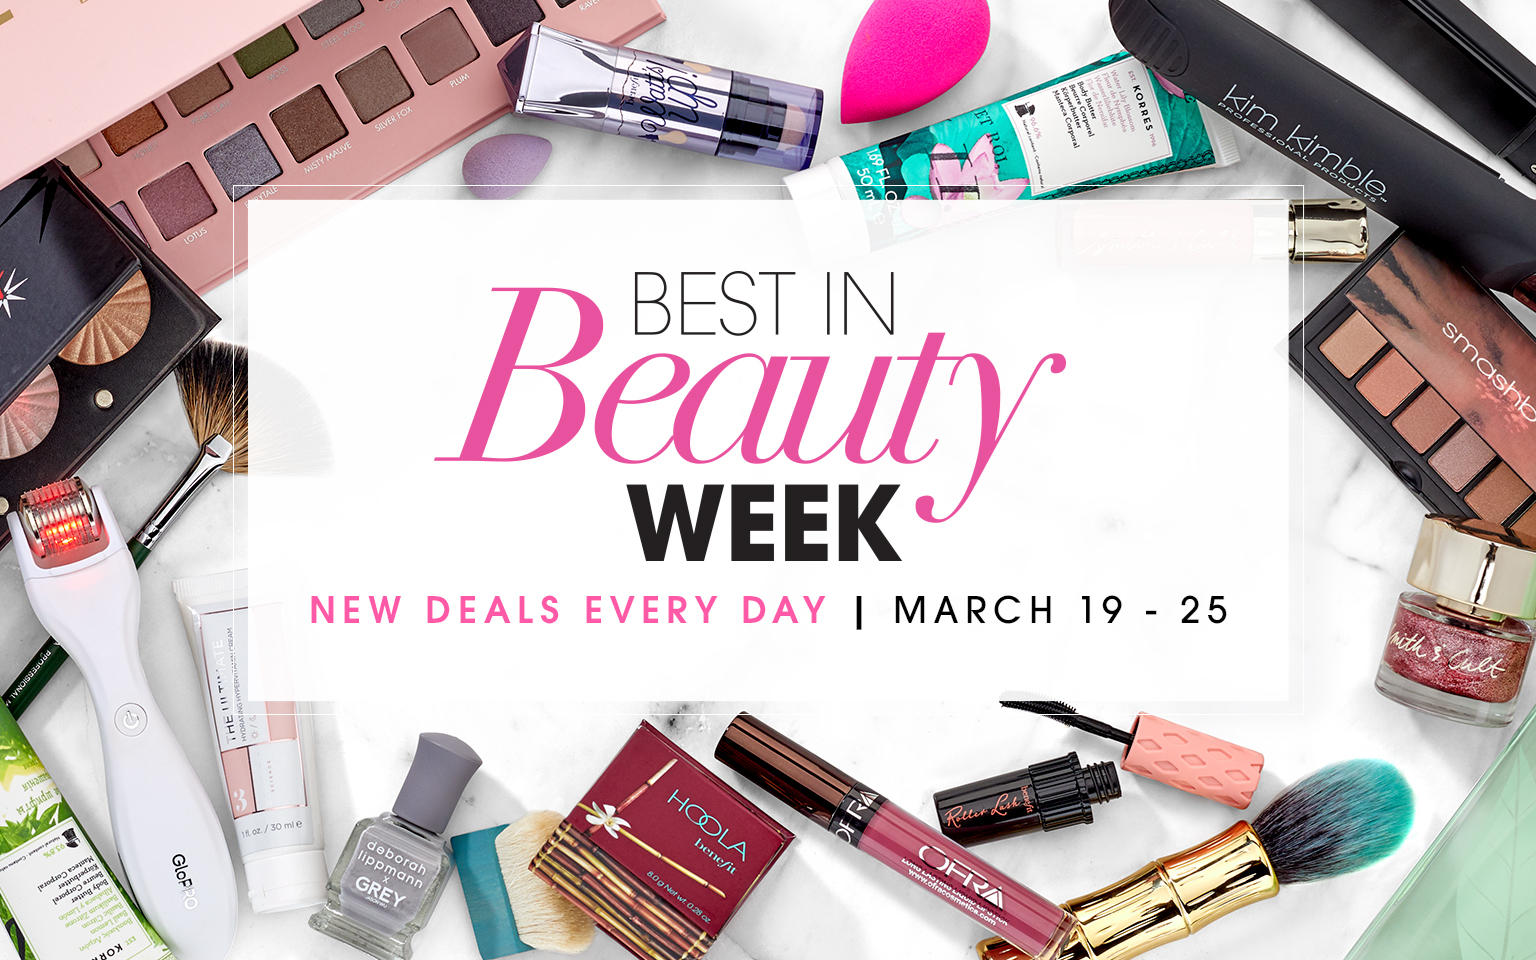 Best in Beauty Week. New Deals Every Day. March 19-25